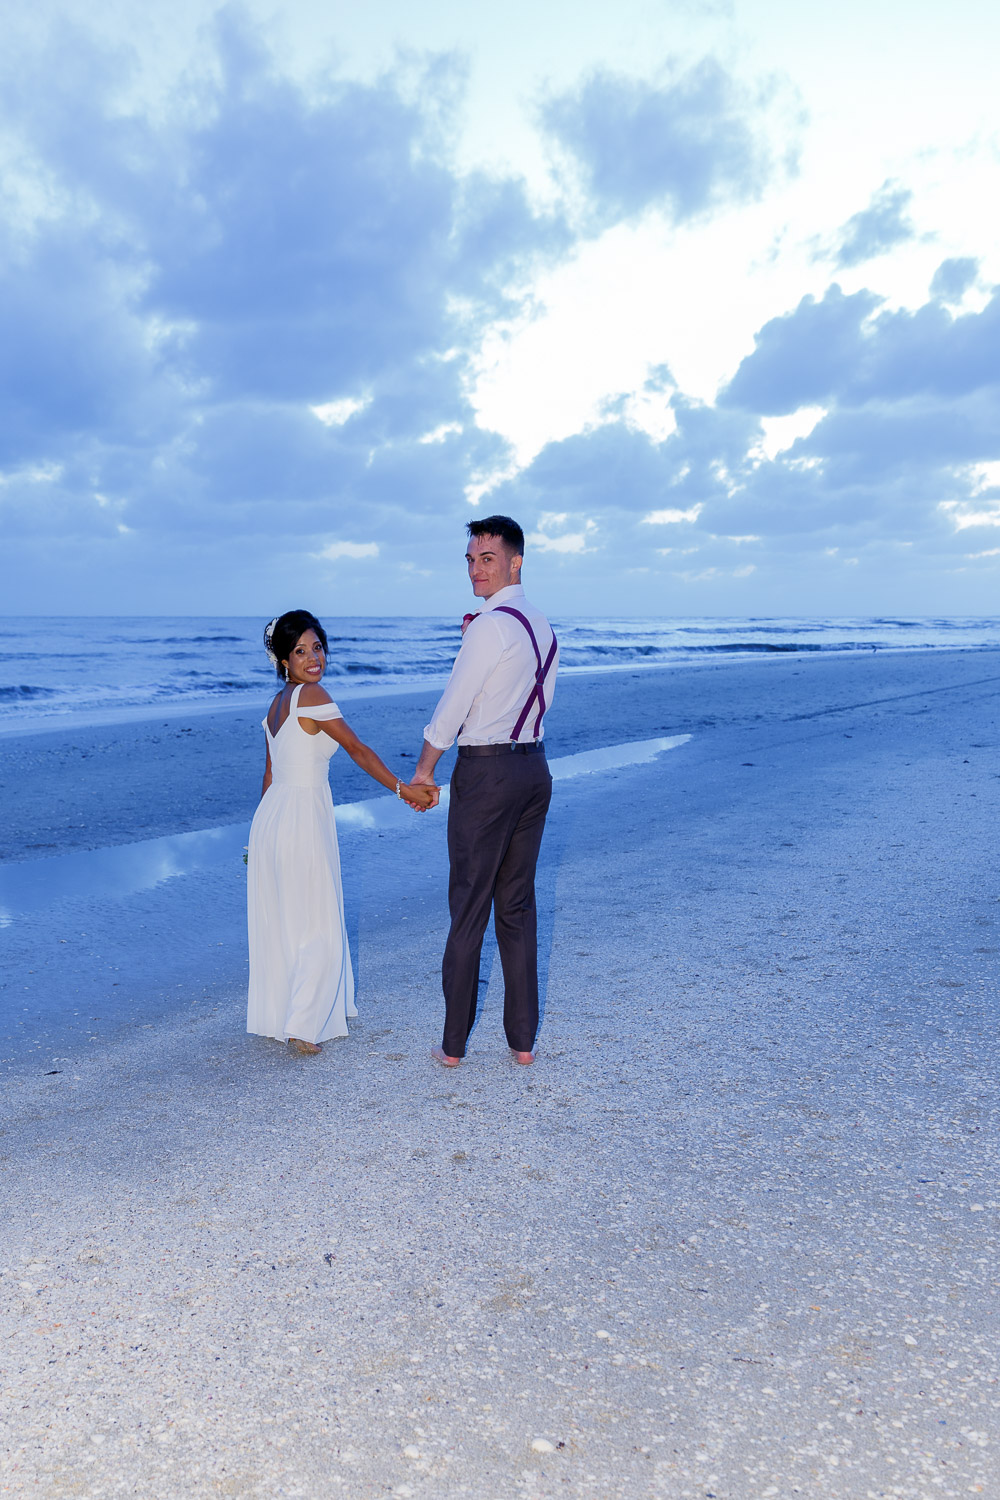 Steve McCarthy Photography: Premier SWFL Wedding Photographer serving all of SWFL  , from Tampa to Naples, Fort Myers Beach, Pine Island, Sanibel, Captiva and Marco Island and over to Miami and up to Delray Beach, including: Tampa, Sarasota, Venice, Cape Coral, Fort Myers, Bonita Springs, Naples, Golden Gate, Arcadia, LaBelle, Miami, Fort Lauderdale, Boca Raton and Delray Beach with everywhere in between.